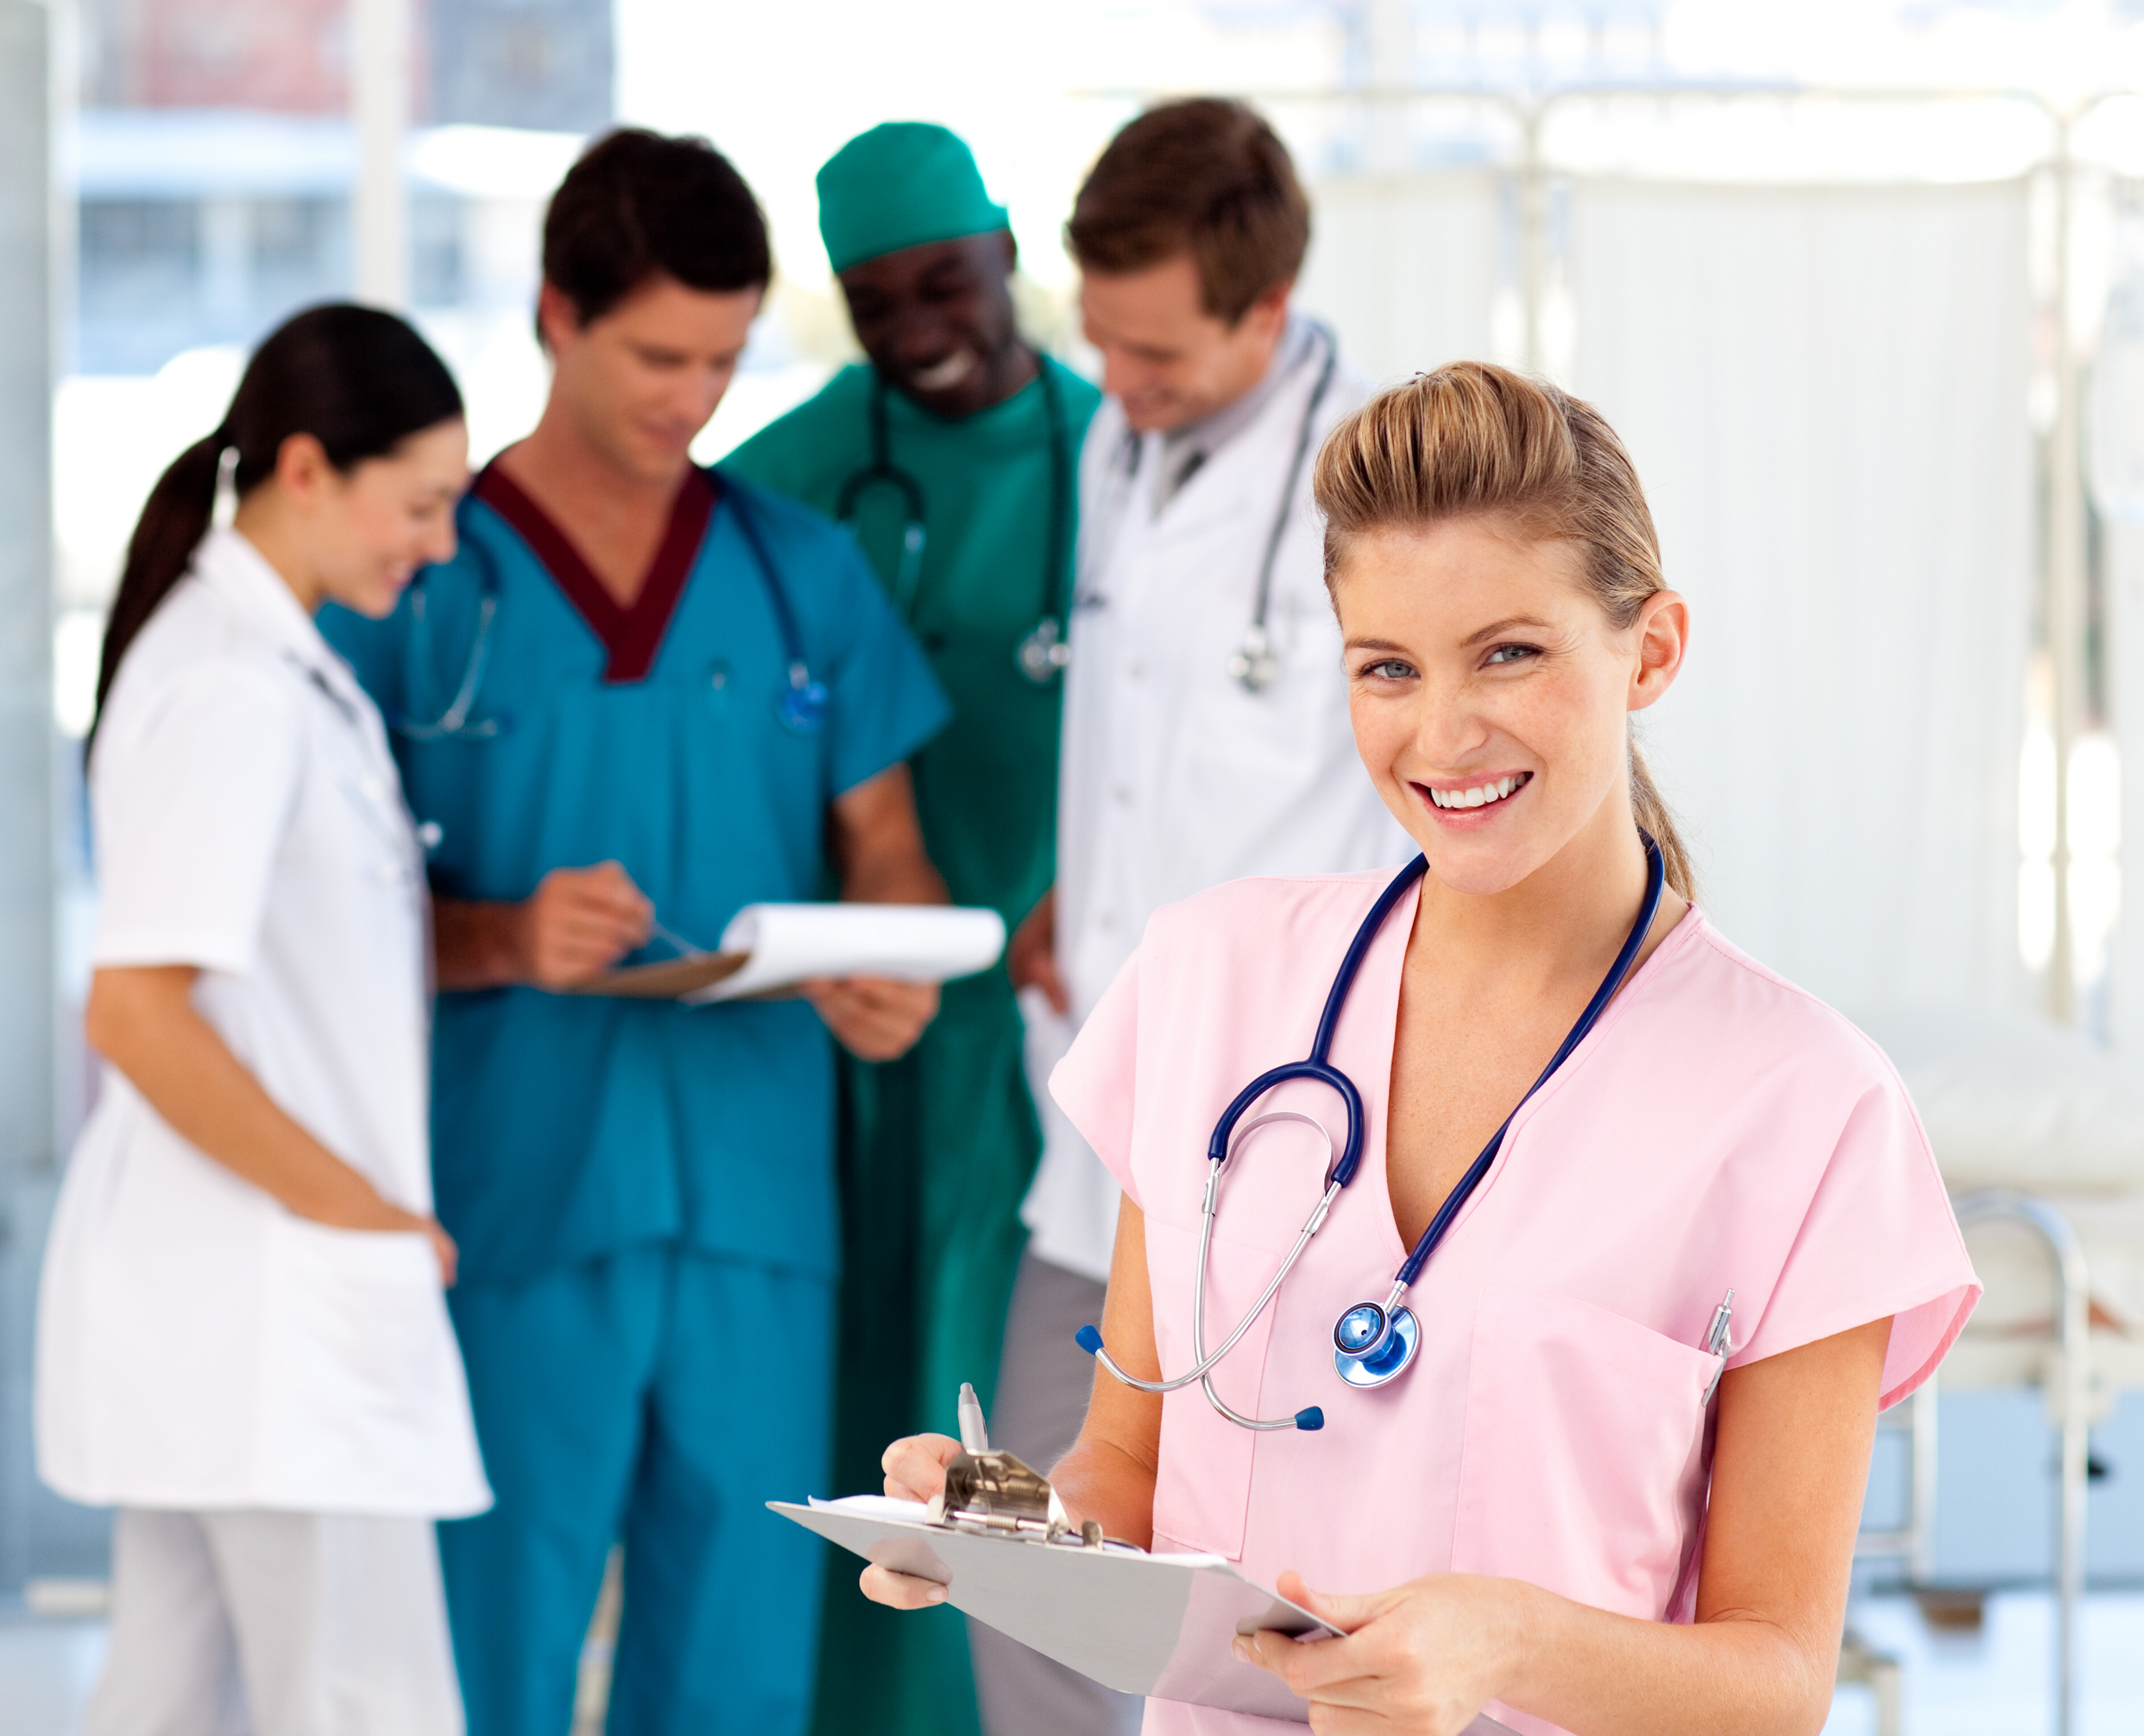 Why get only 1 certification when you can get 8 -10.  Make yourself more marketable in the health care field.